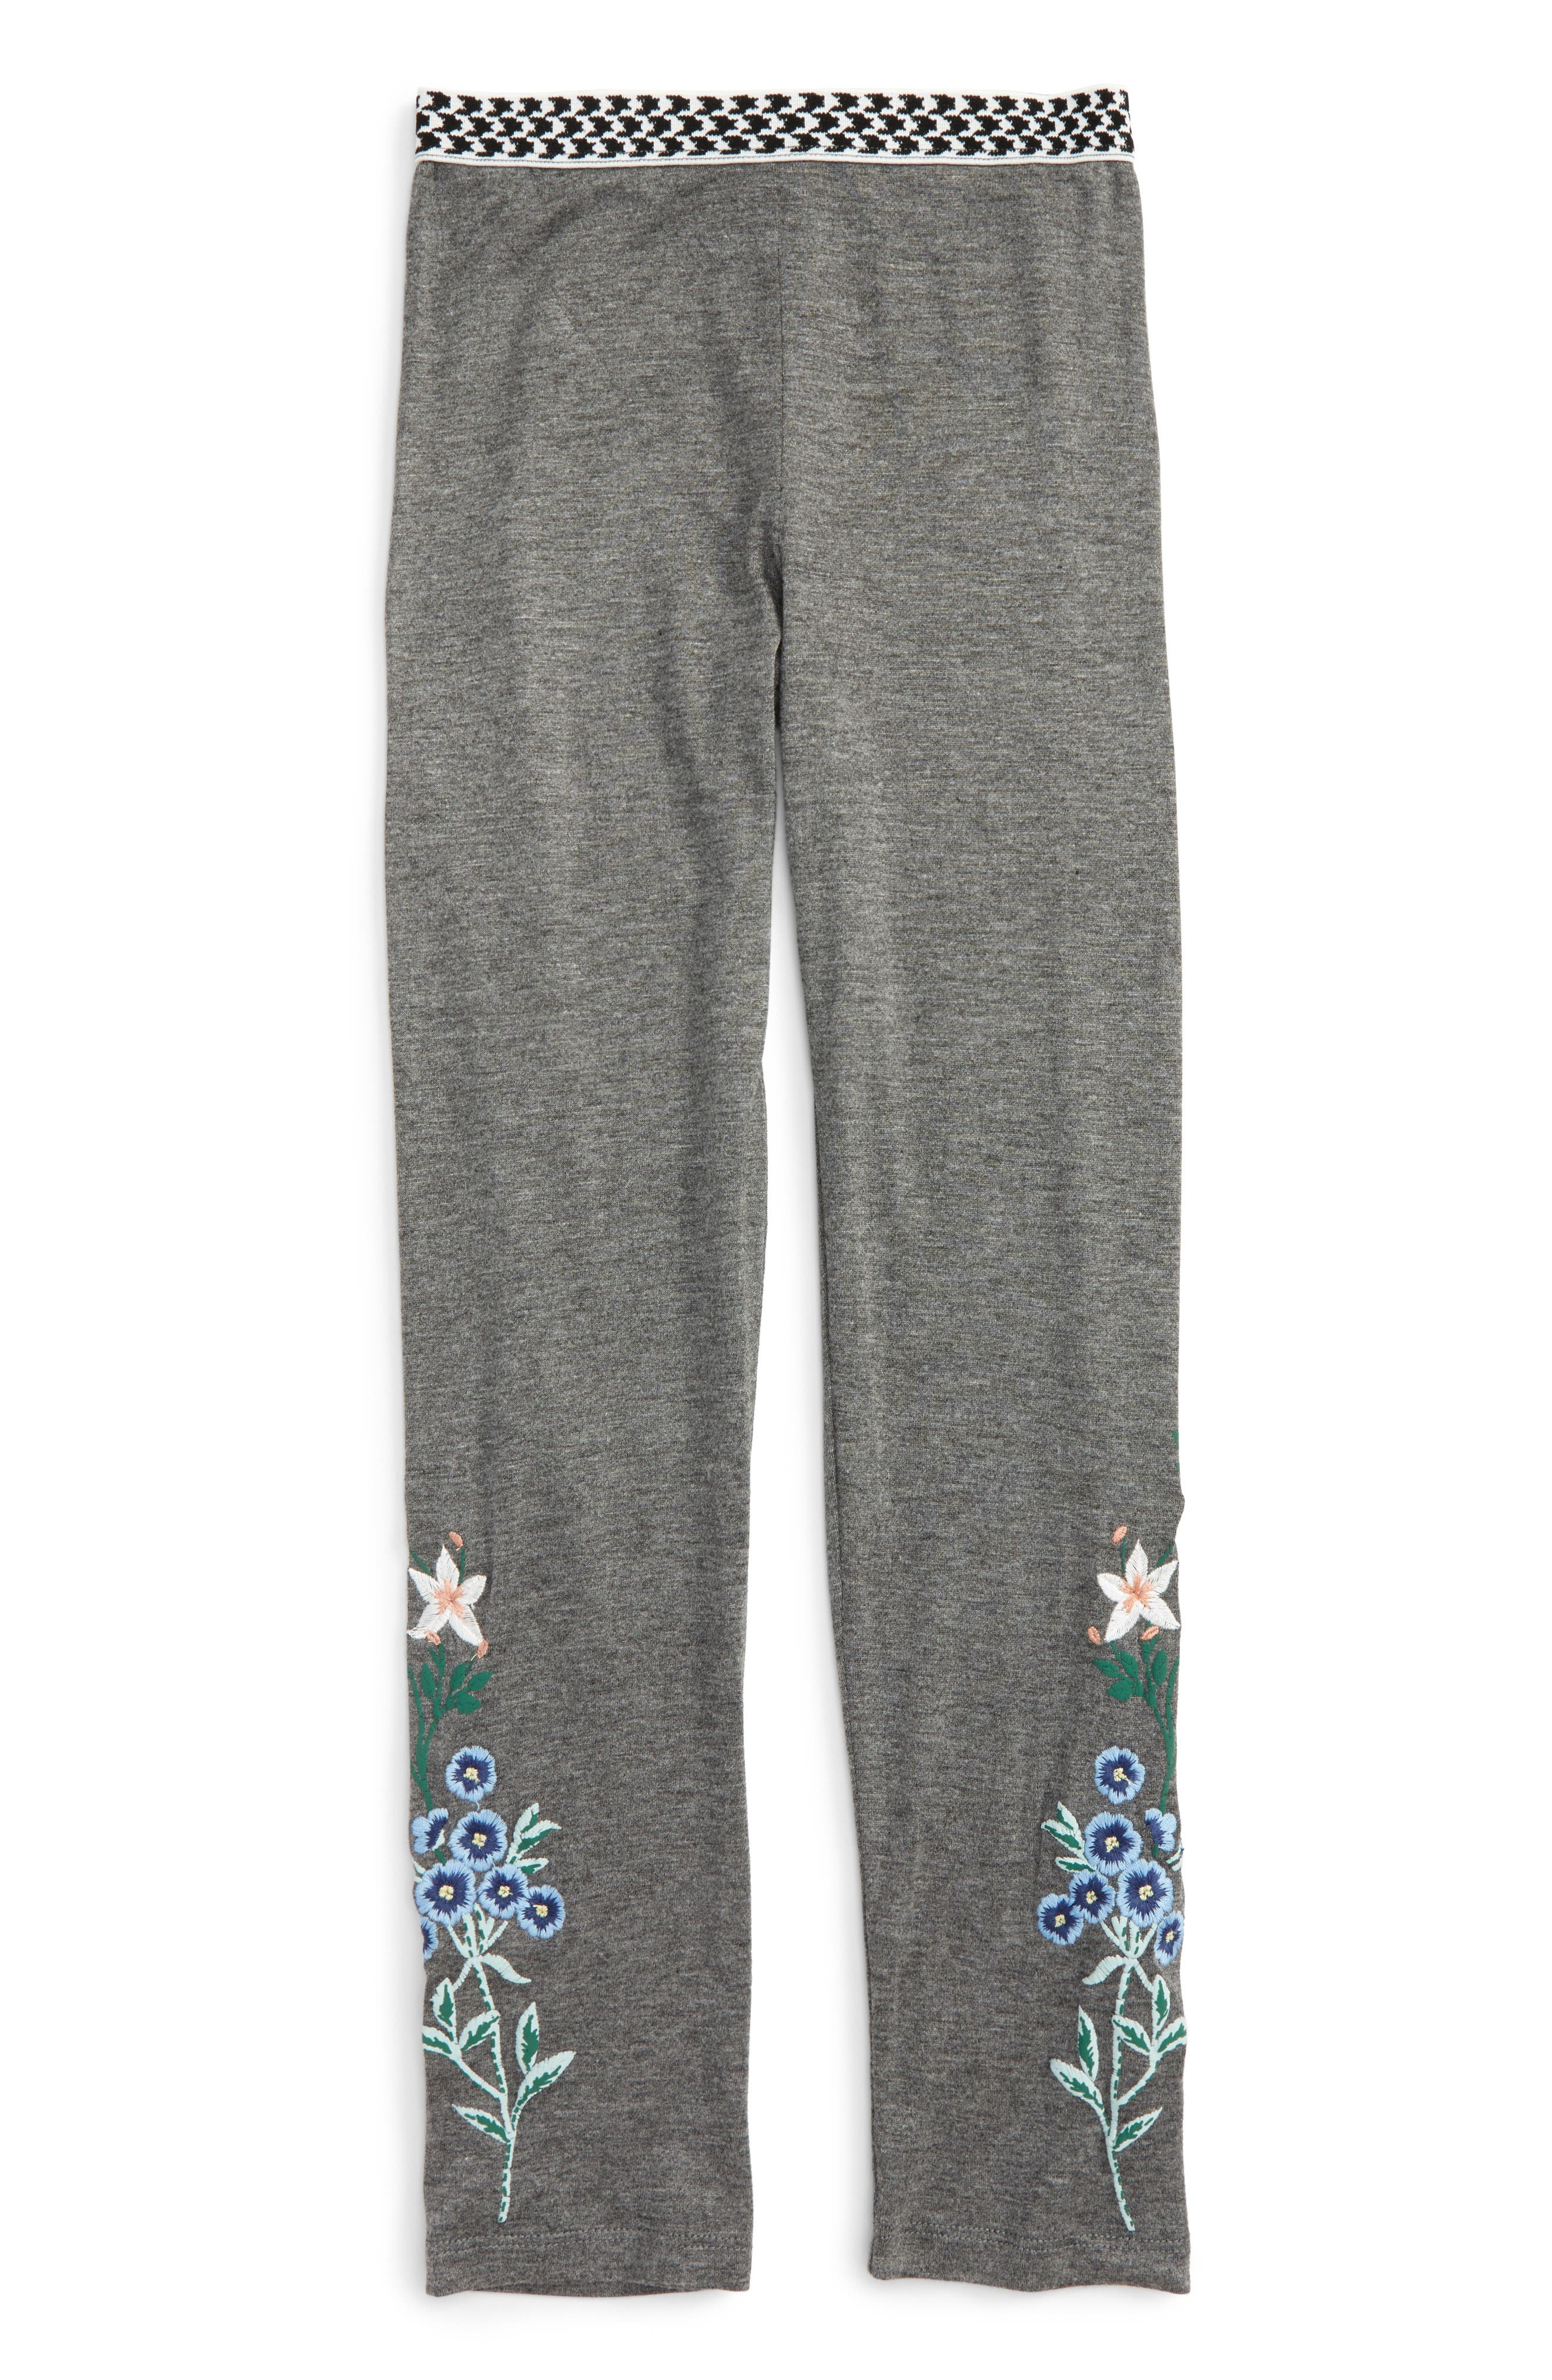 Embroidered Leggings,                             Main thumbnail 1, color,                             021